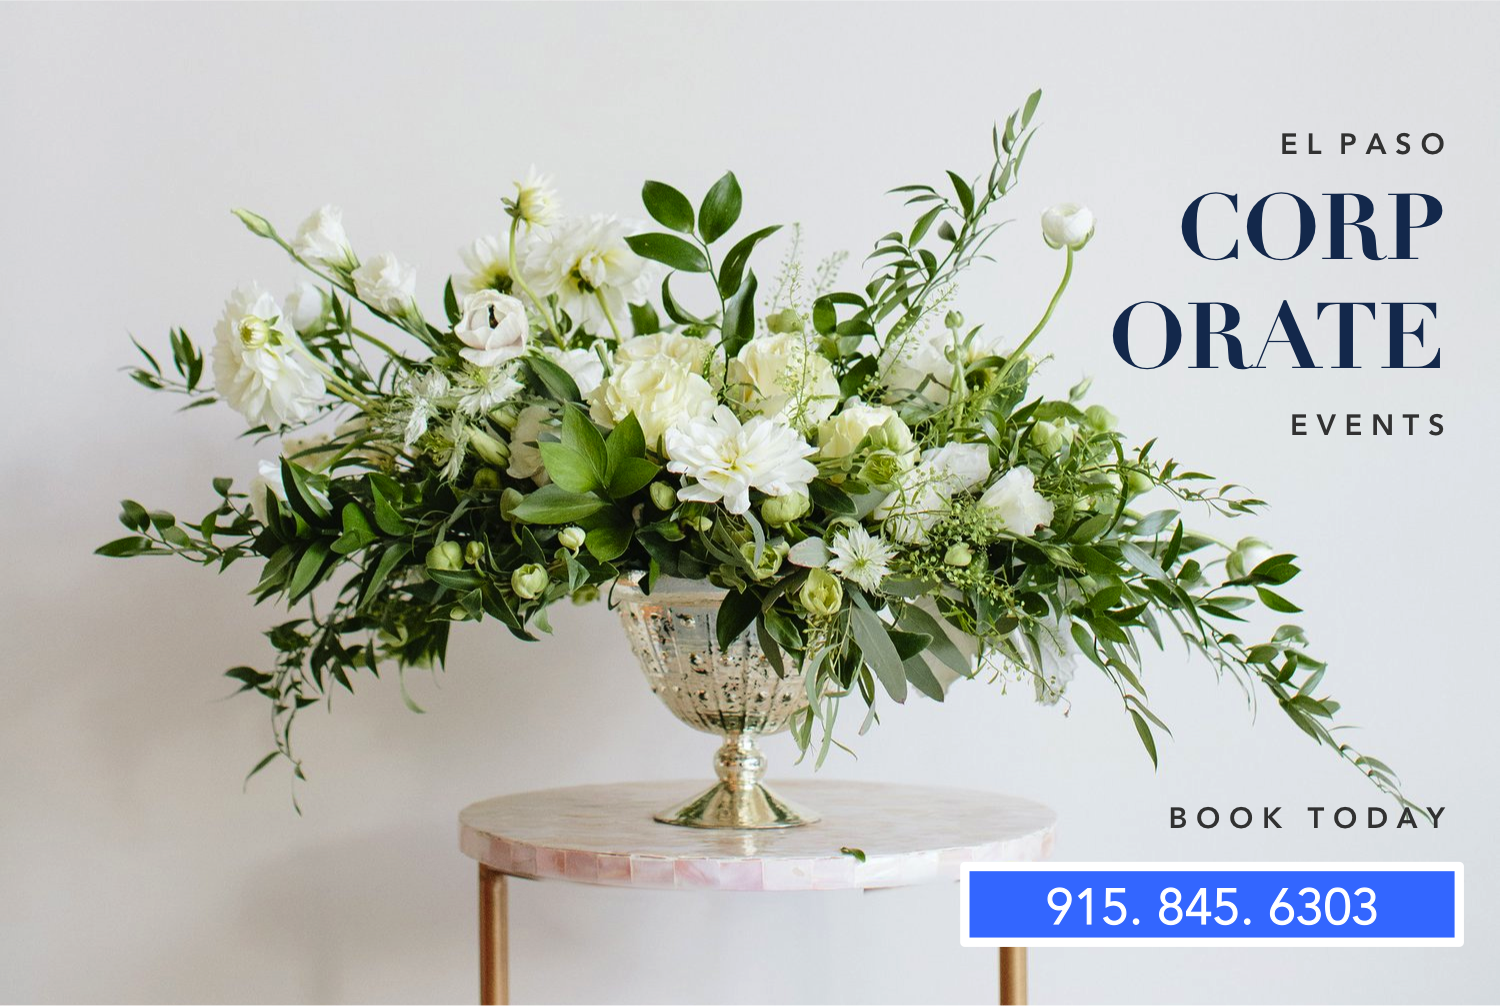 01-angies-1-angies-floral-delivery-corporate-events-el-paso-events-designs-shop-el-paso-florist-flowershop-corporate-events-el-paso-florist-79912.png